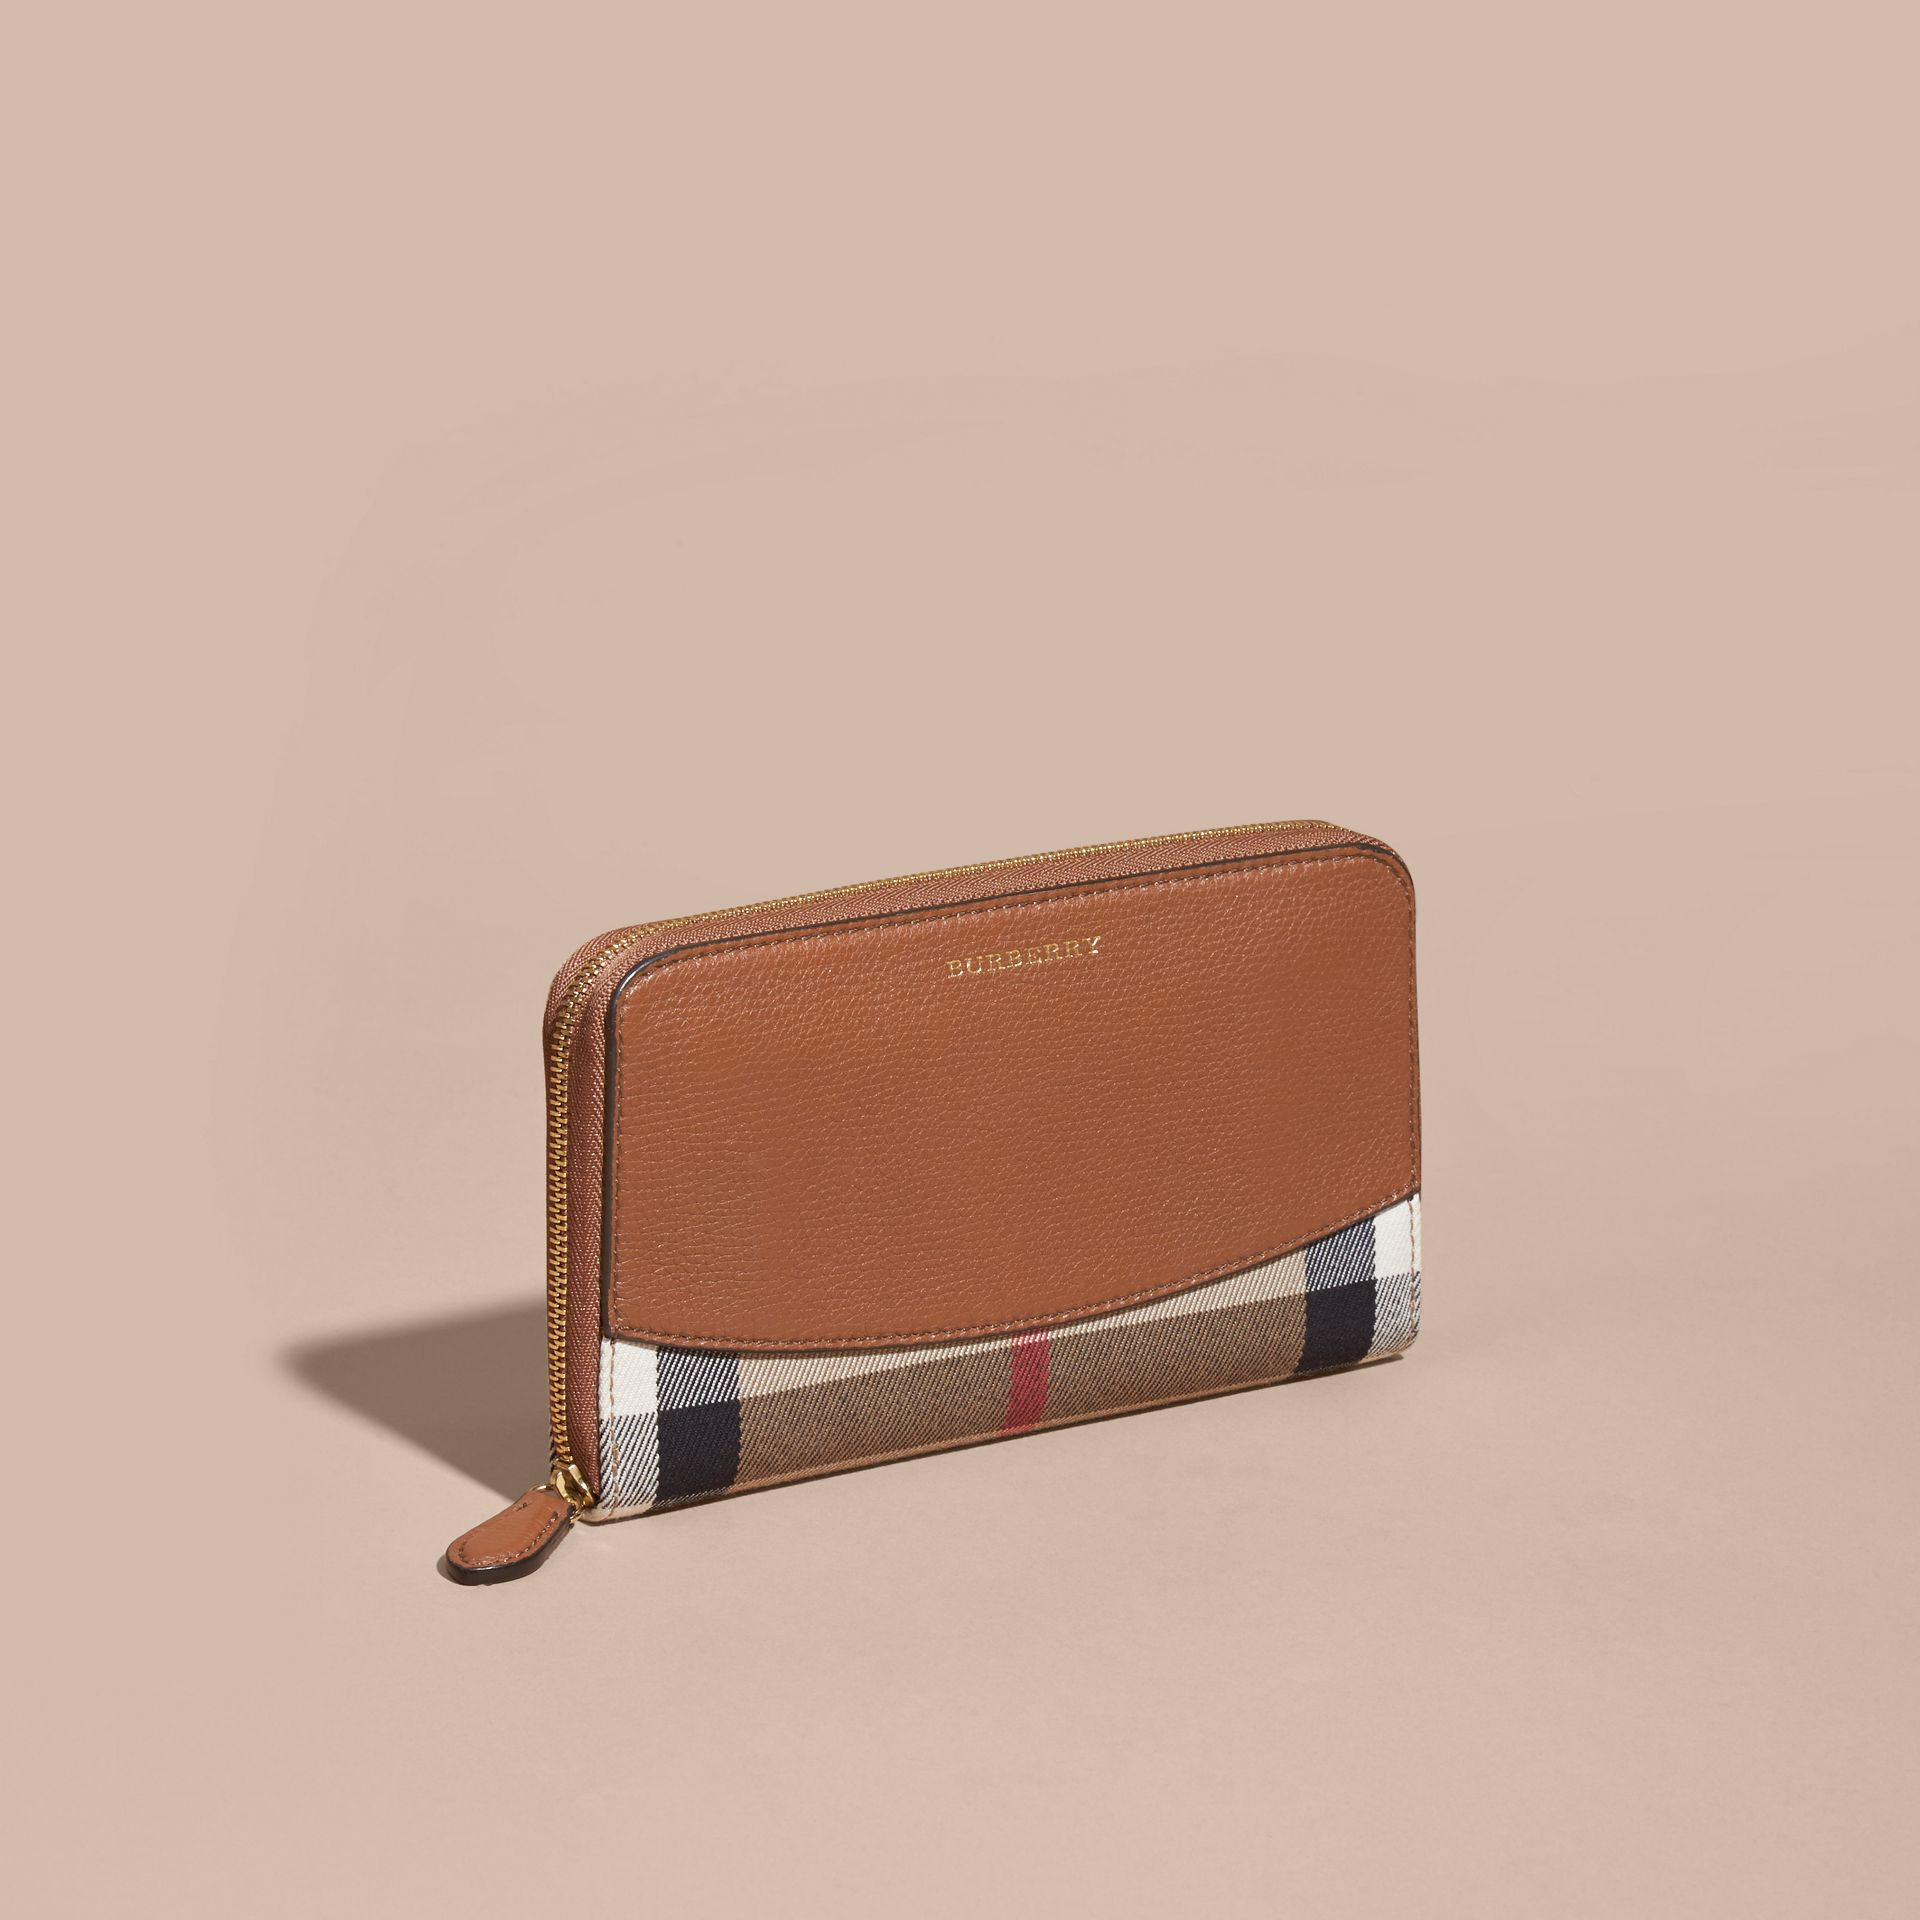 House Check and Leather Ziparound Wallet in Brown Ochre - Women | Burberry Canada - gallery image 6